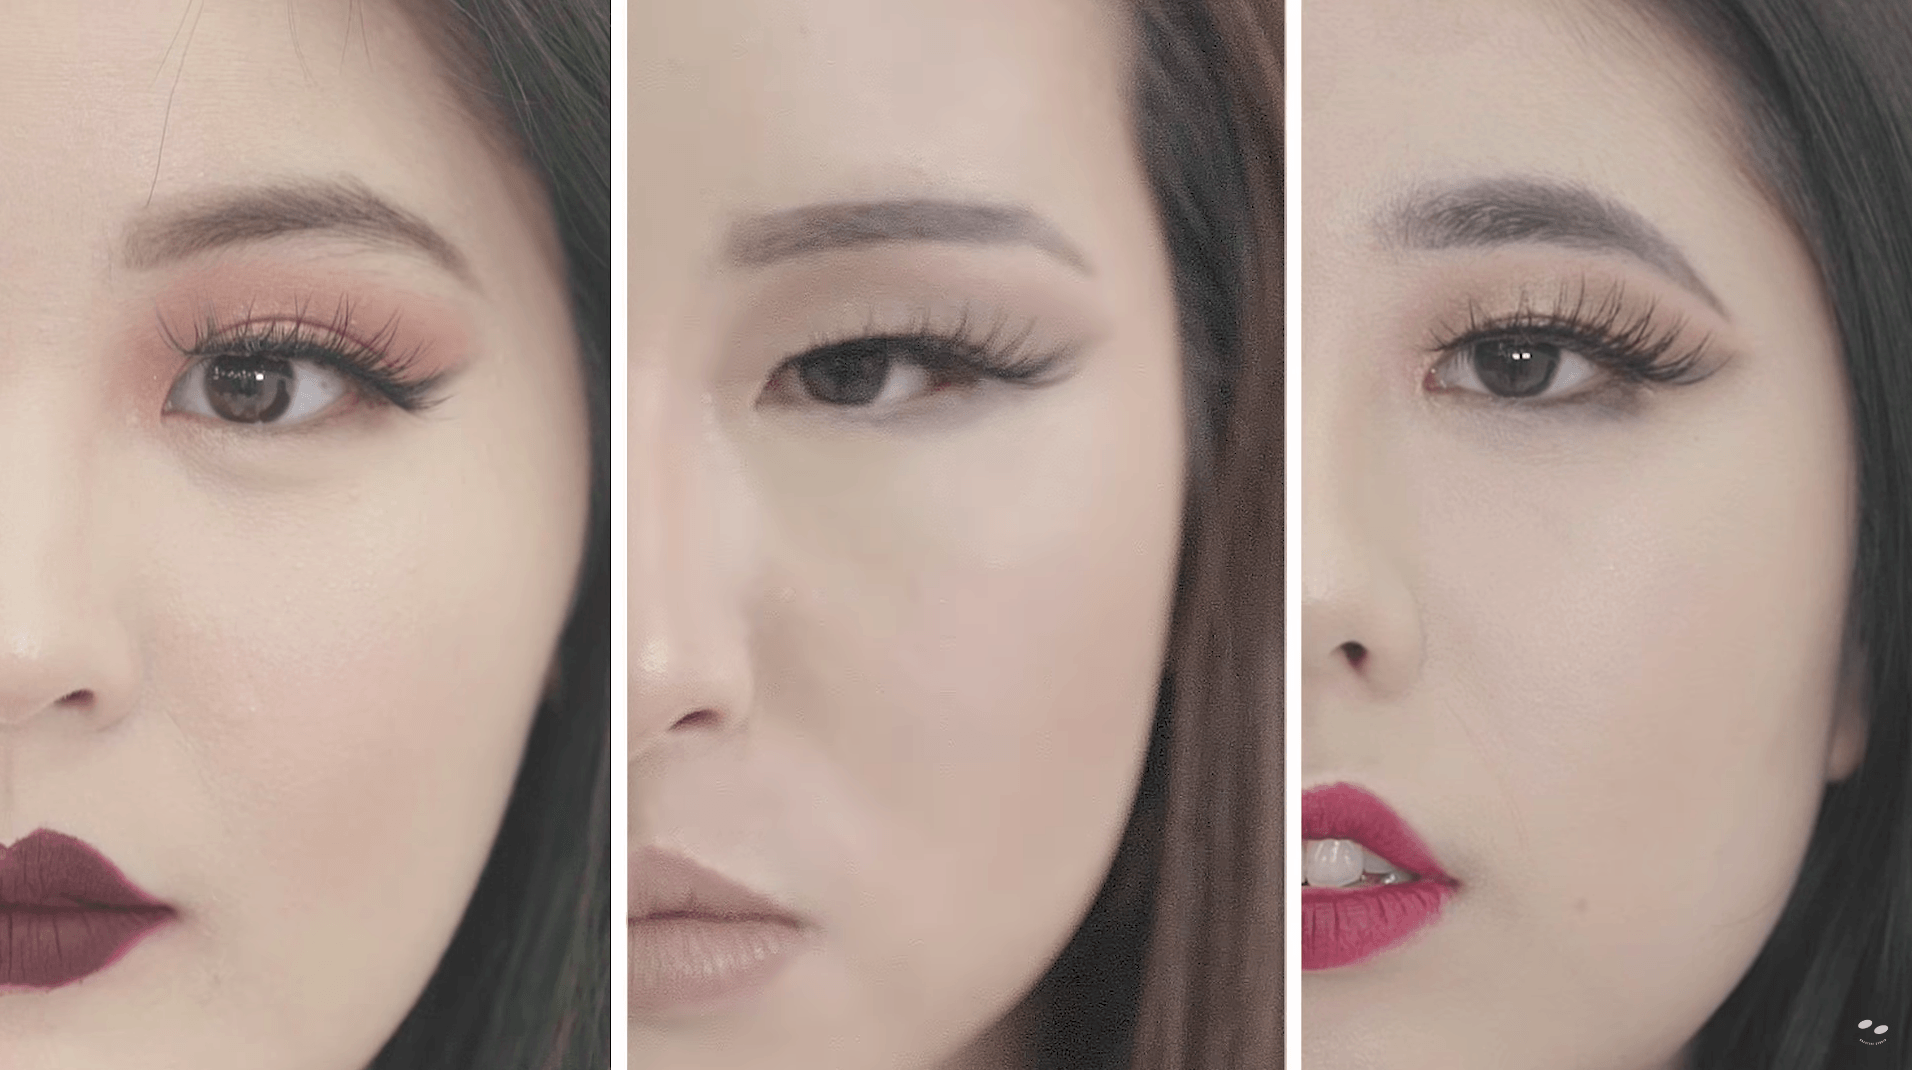 These Korean girls reactions to their Western makeovers will make your day